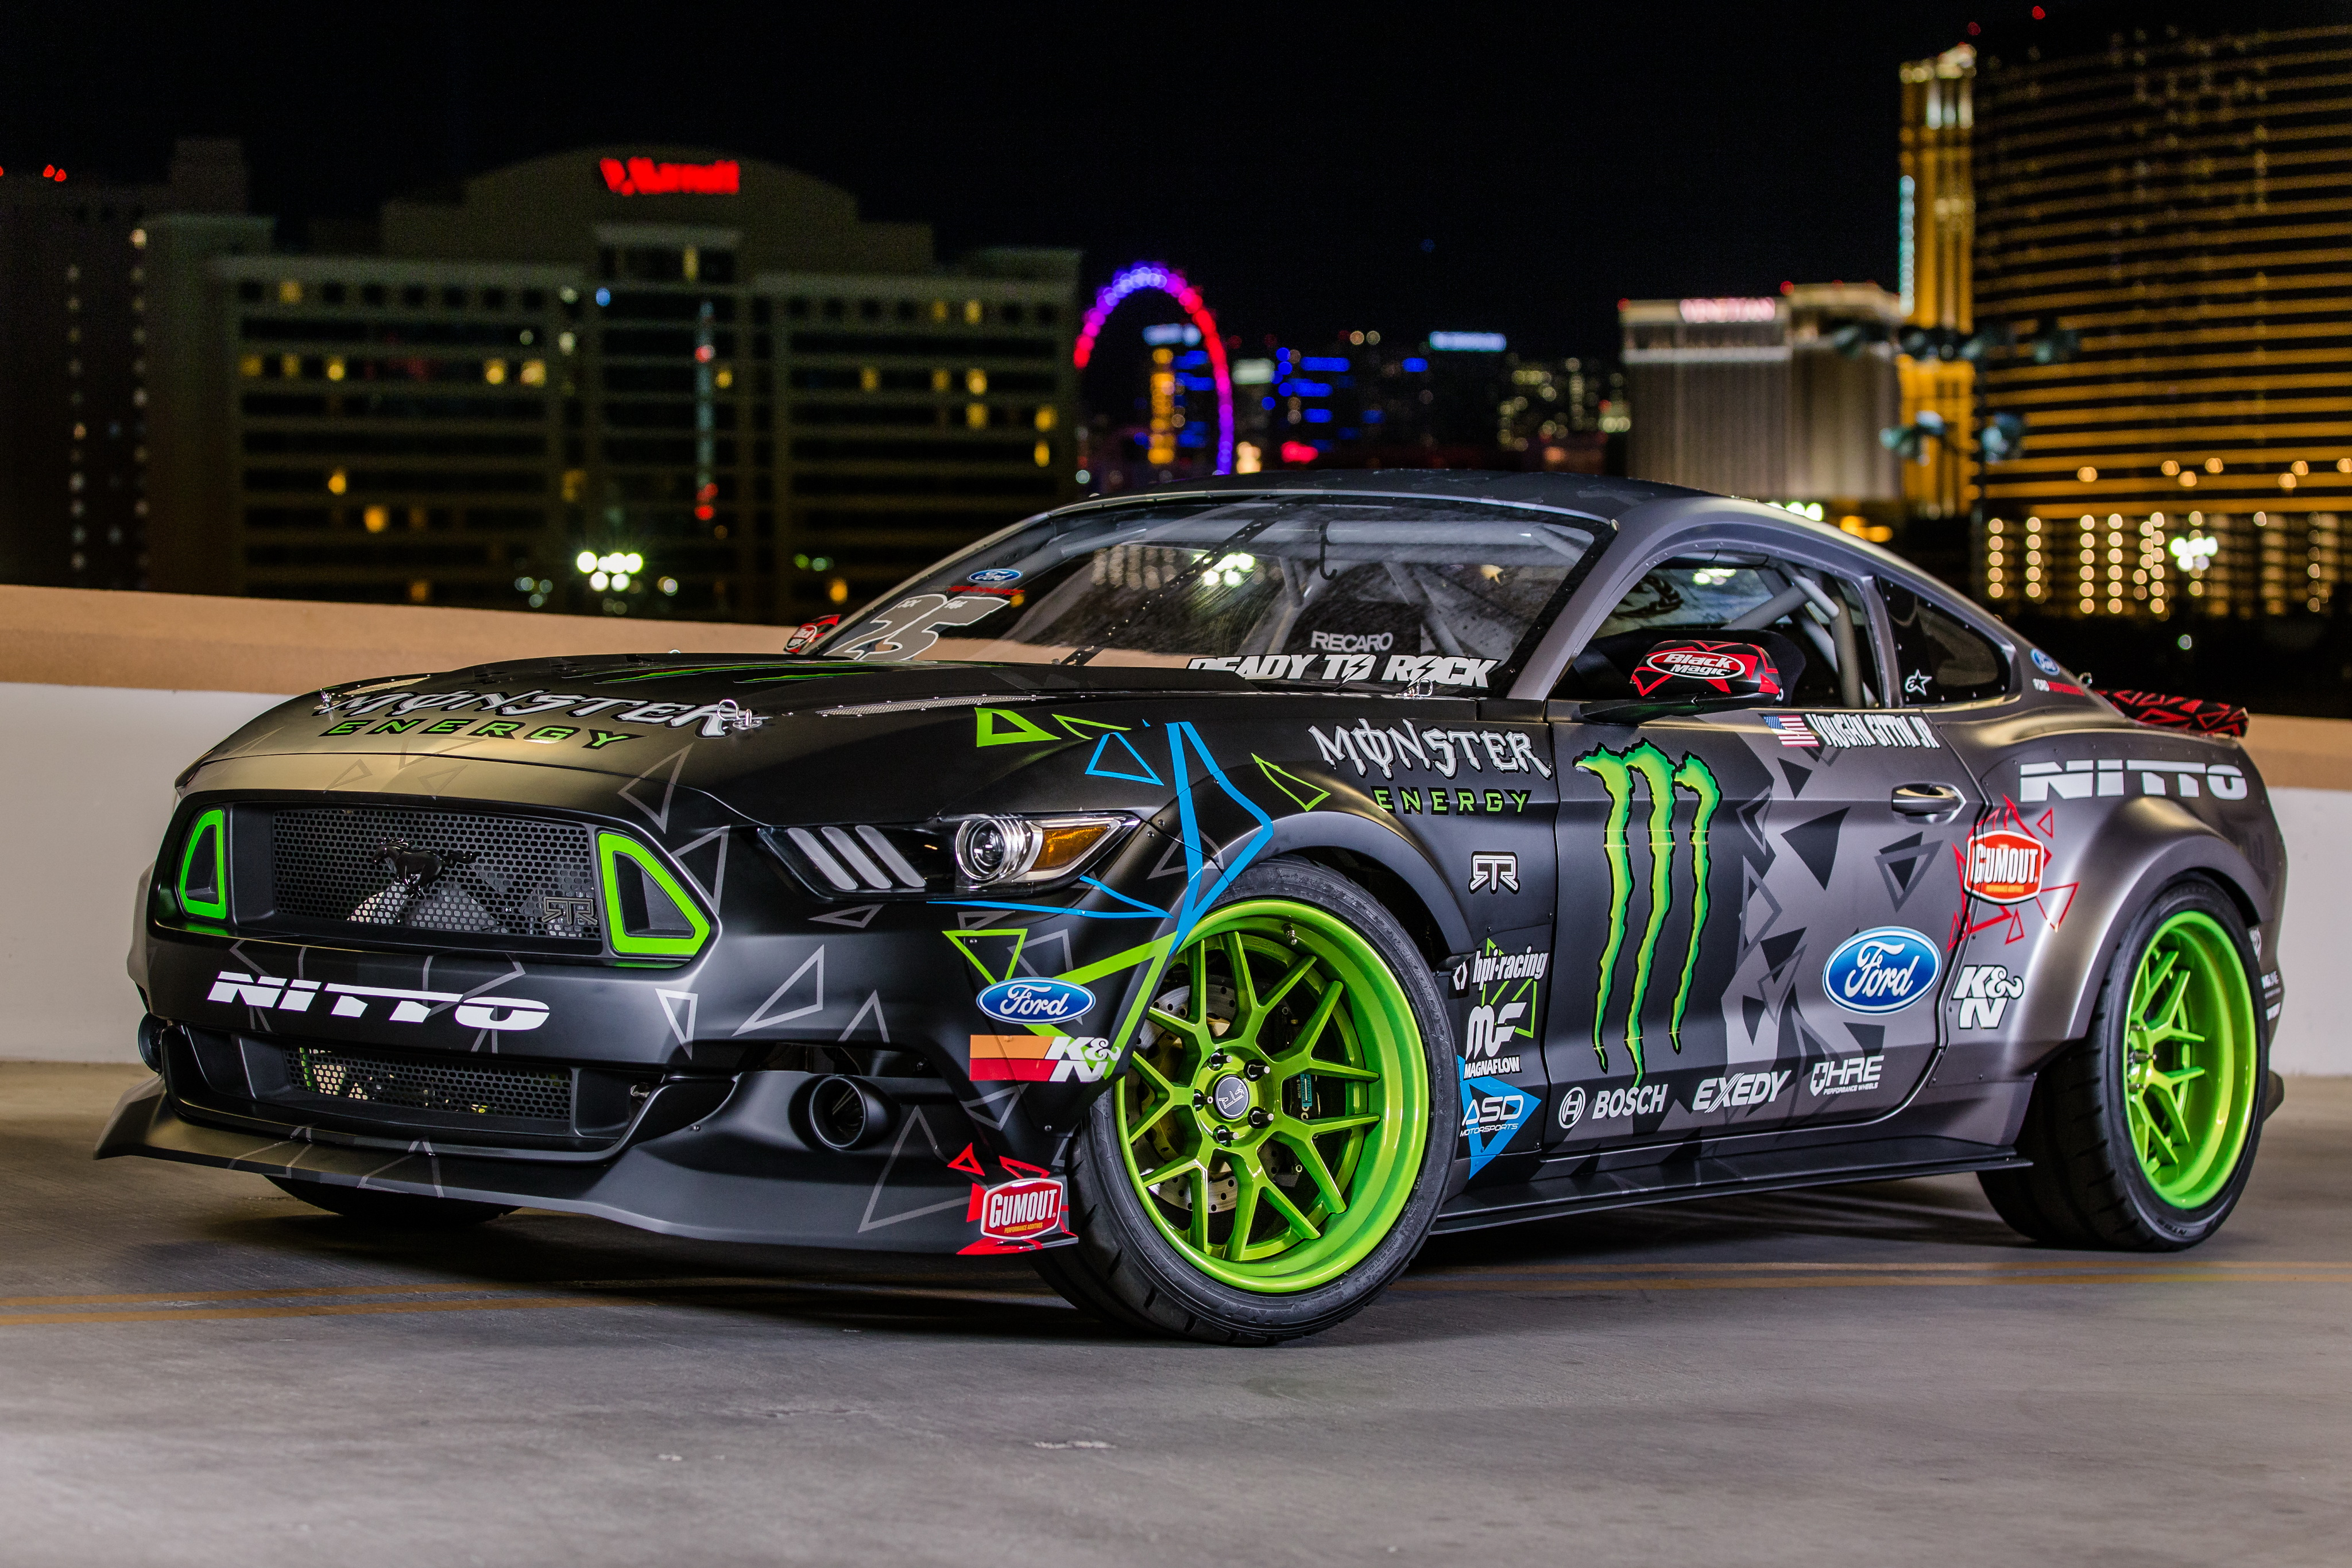 Ford Mustang Rtr Hot Rod Muscle Car Race Car 4096x2731